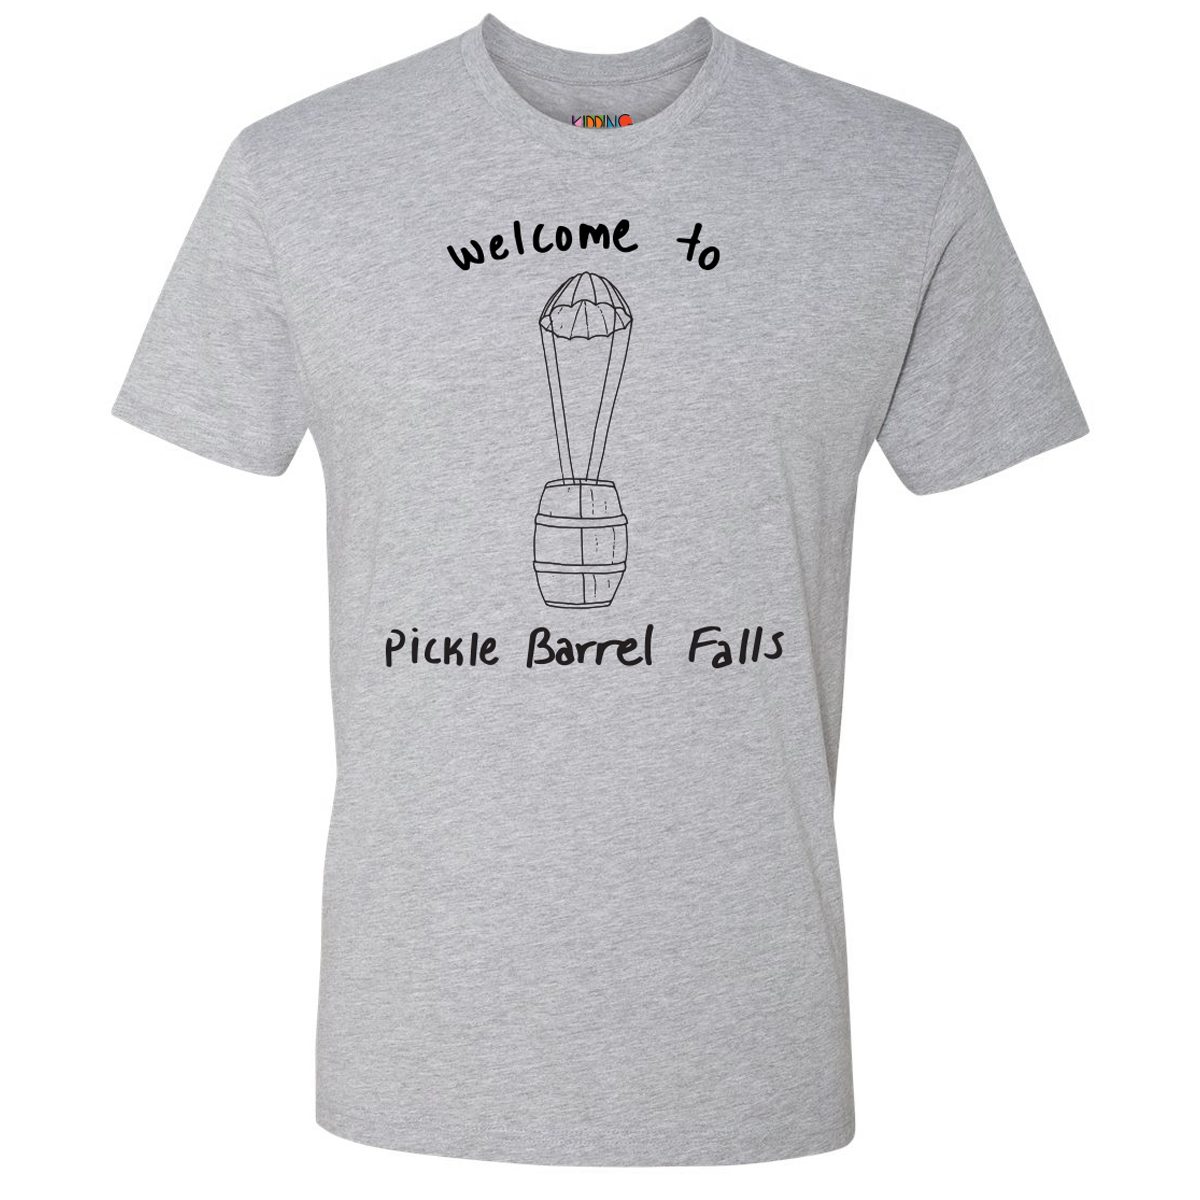 Kidding Welcome to Pickle Barrel Falls T-Shirt (Heather Grey)